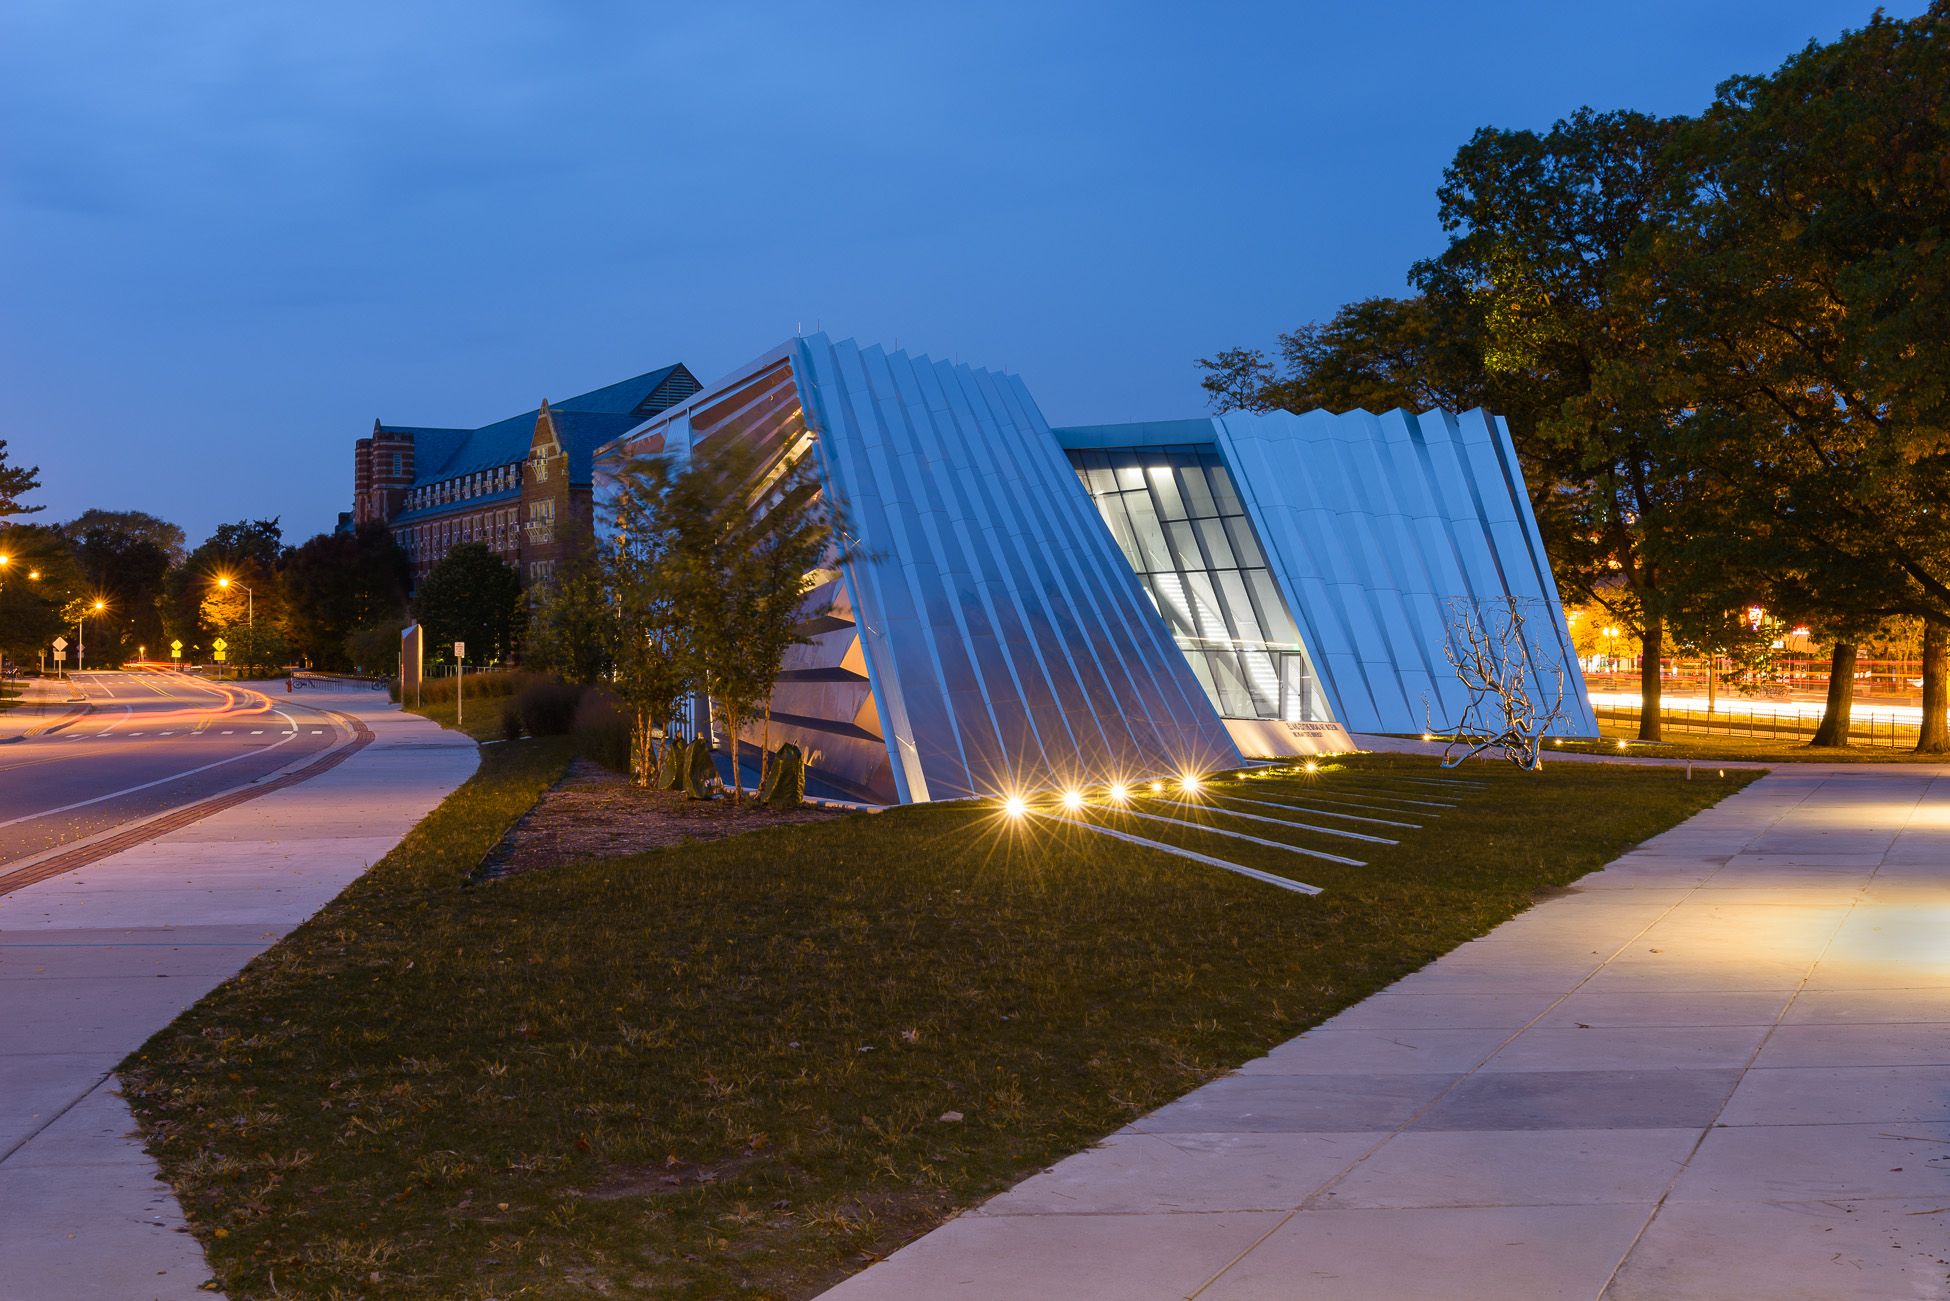 116-Zaha Hadid Broad Museum Lansing Doublespace Toronto Architectural Photography.jpg